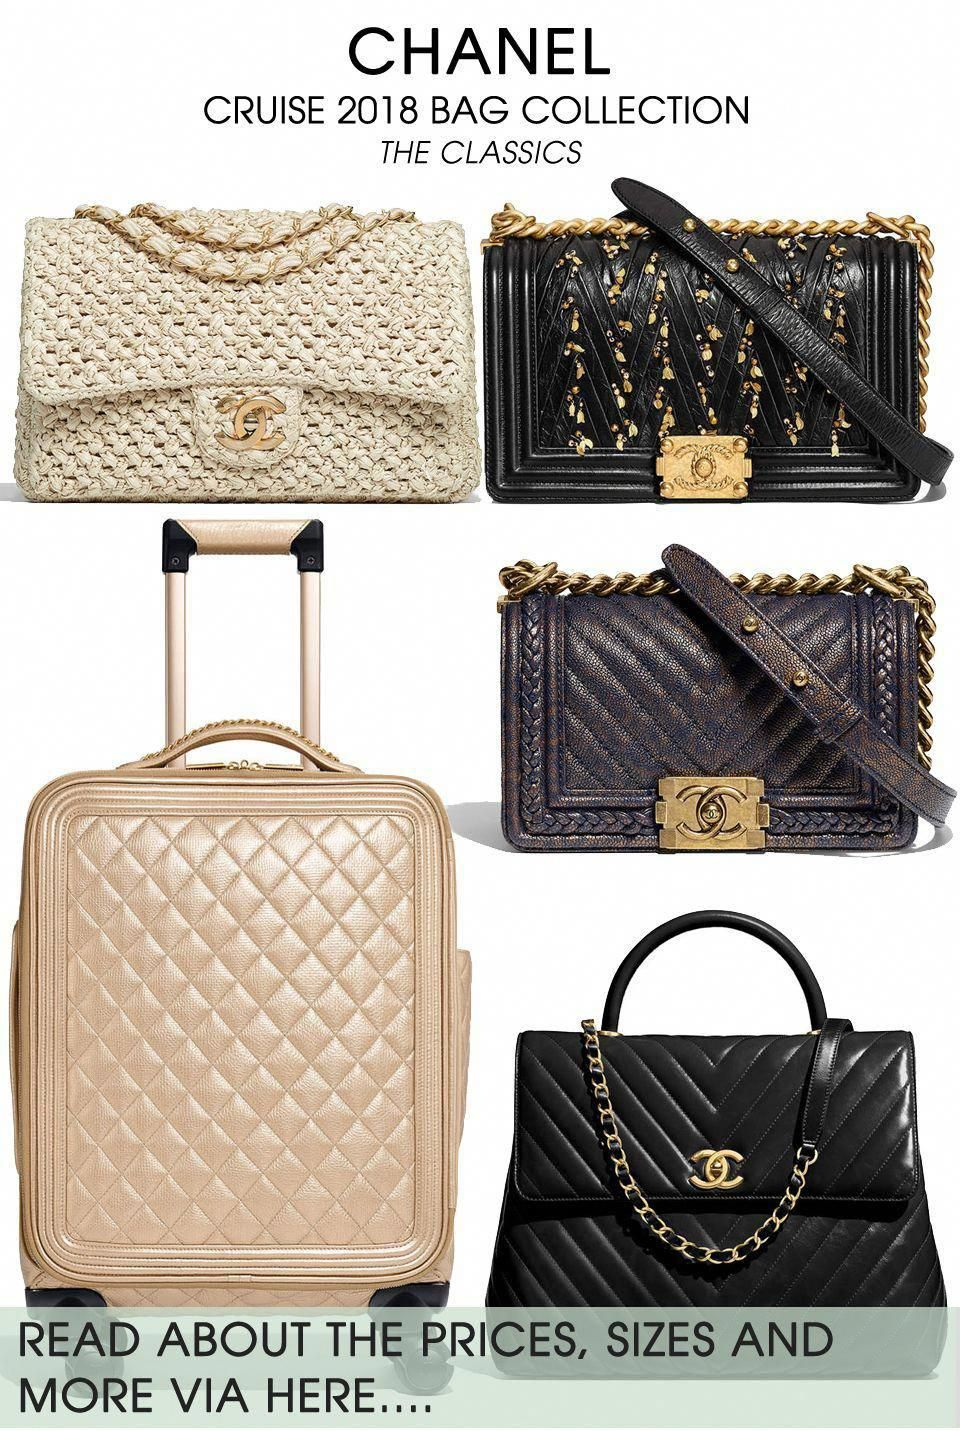 60f75973ee Chanel Cruise 2018 Boy & Classic Bag Collection - And of course, there are  new